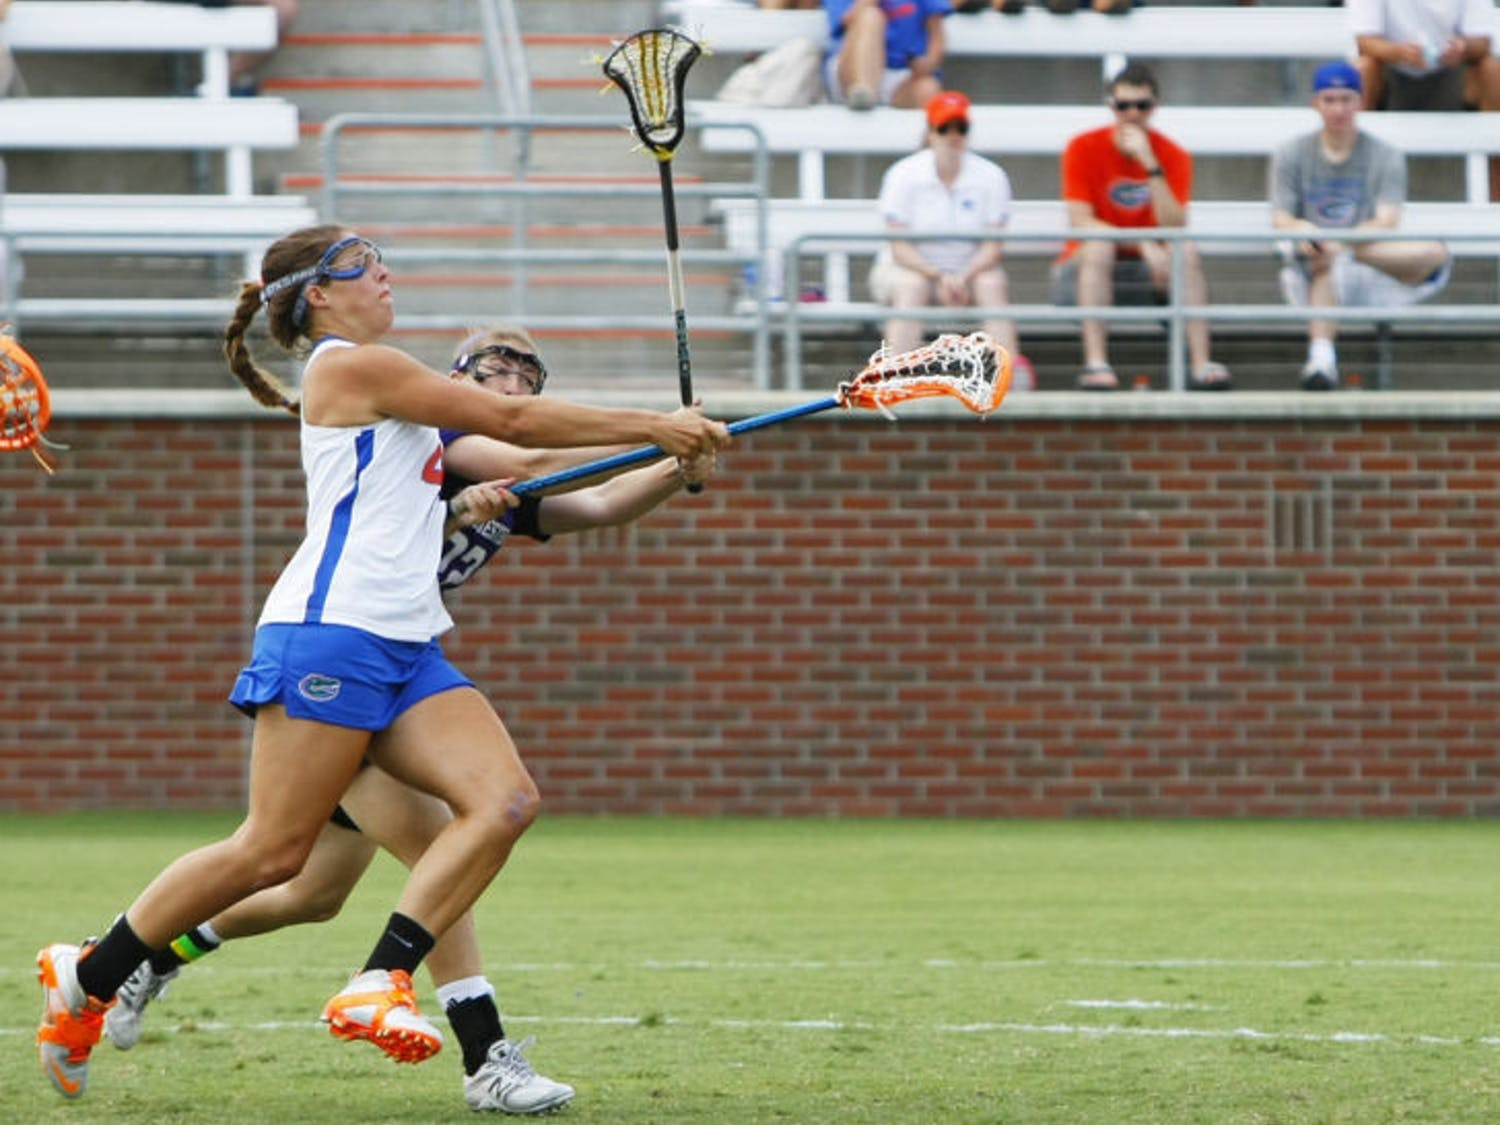 Senior Kitty Cullen attempts a shot during Florida's 14-7 win against Northwestern in the ALC Championship Game on May 5, 2012, at Dizney Stadium. Cullen said teammate Ashley Bruns could beat any defender when Bruns attacks from the crease.